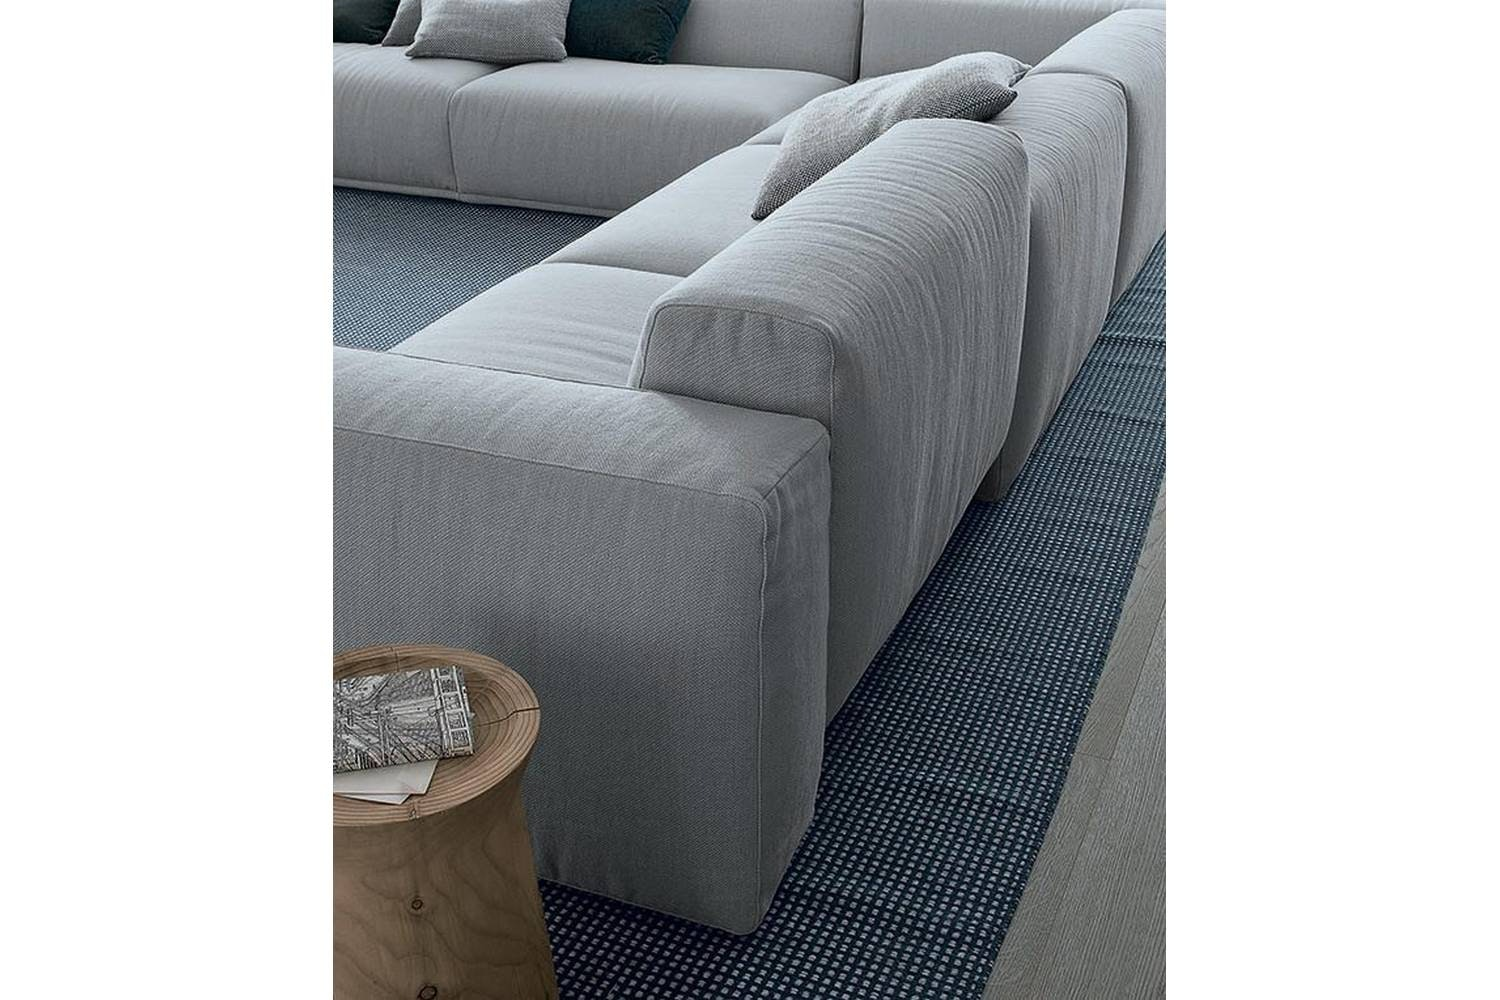 Bolton Sofa by Giuseppe Vigano for Poliform